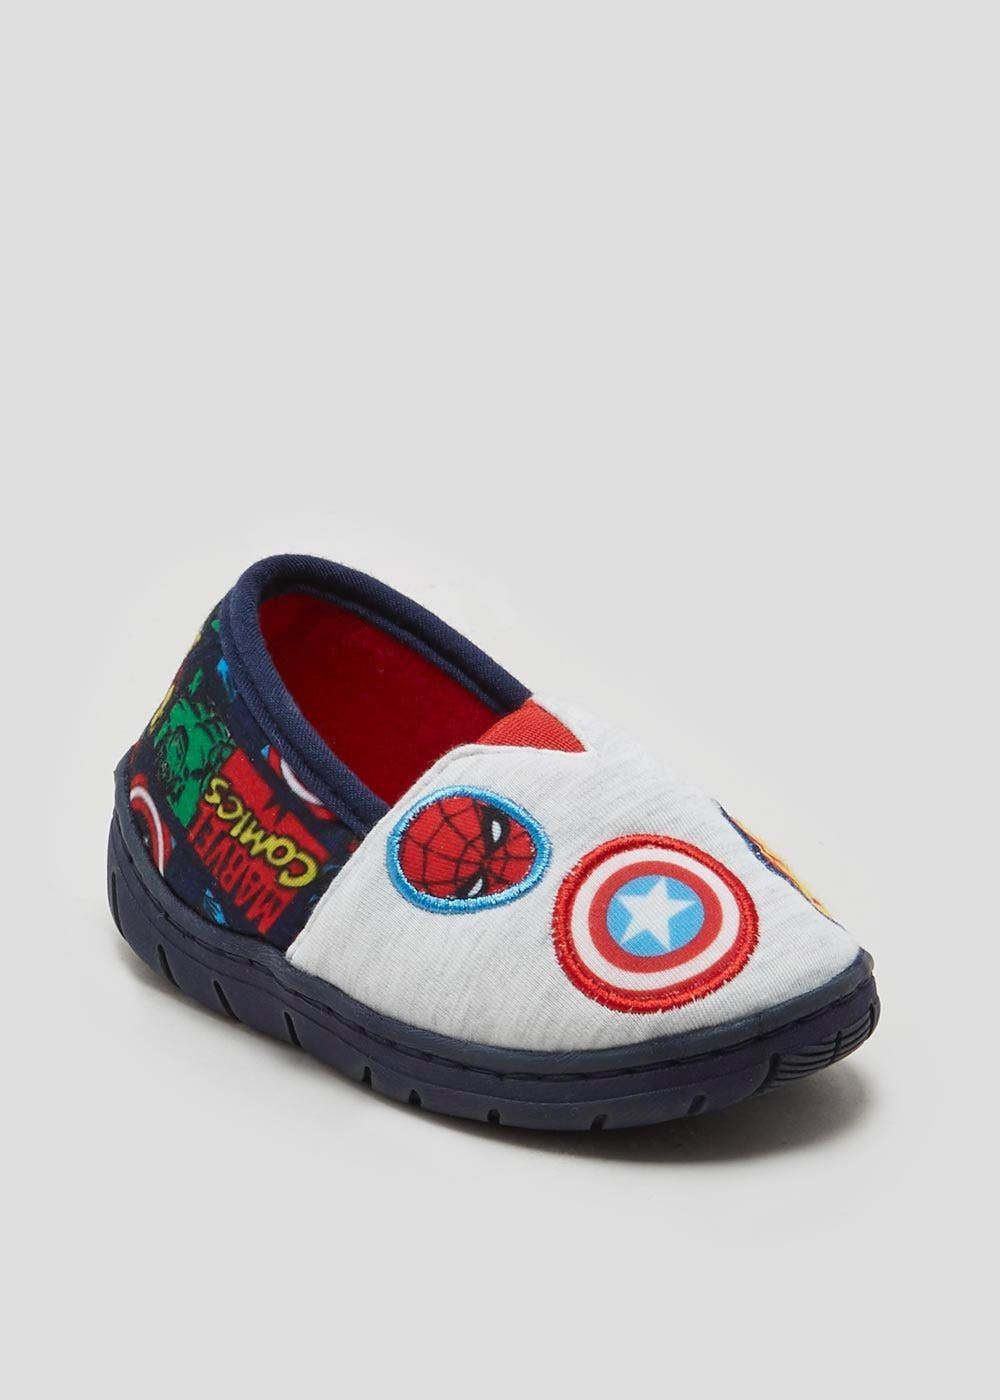 2a6638c5ce7 Kids Marvel Comics Slippers (Younger 7-13) – Multi – Matalan